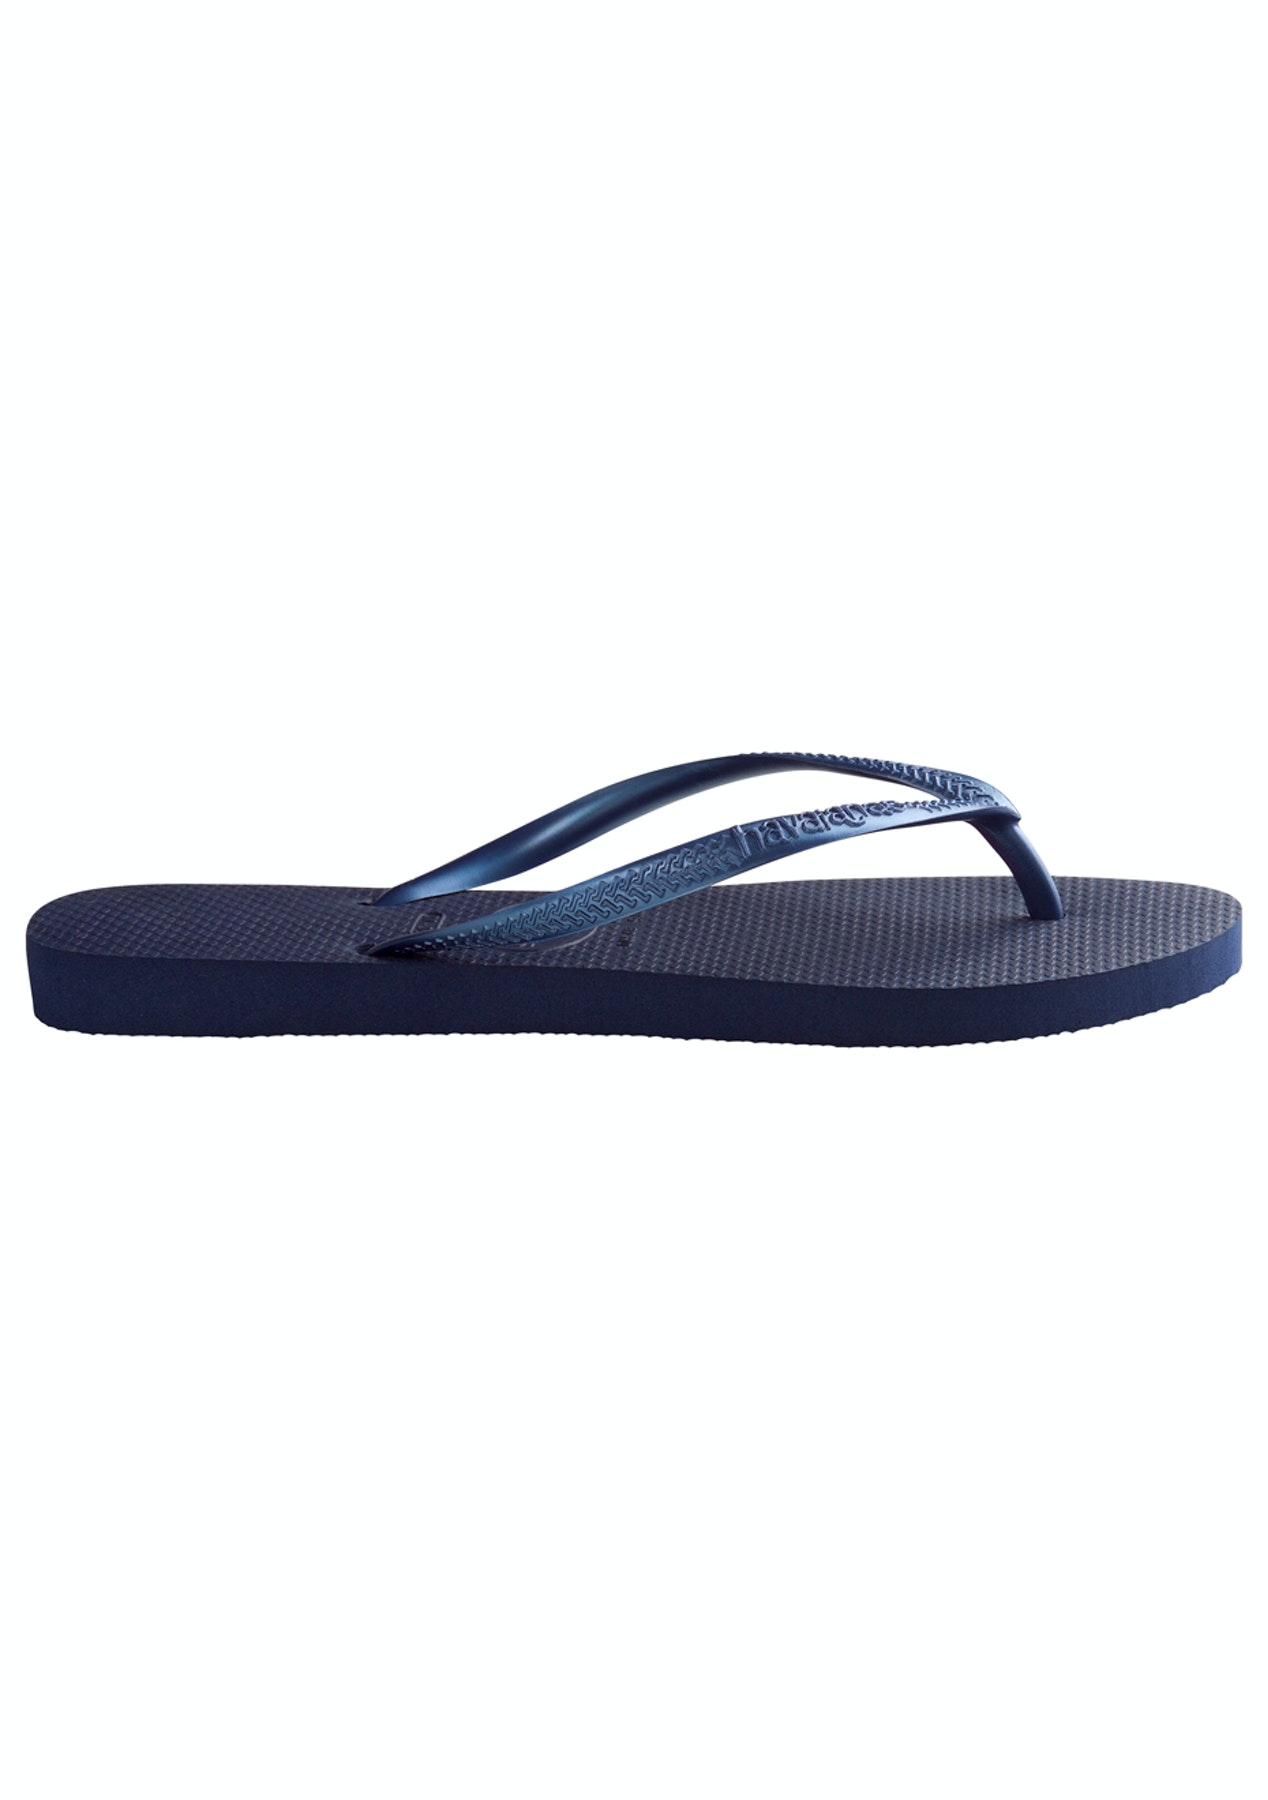 42326fb47ec5 Havaianas - Slim - Navy - Havaianas for the Family from  10 - Onceit